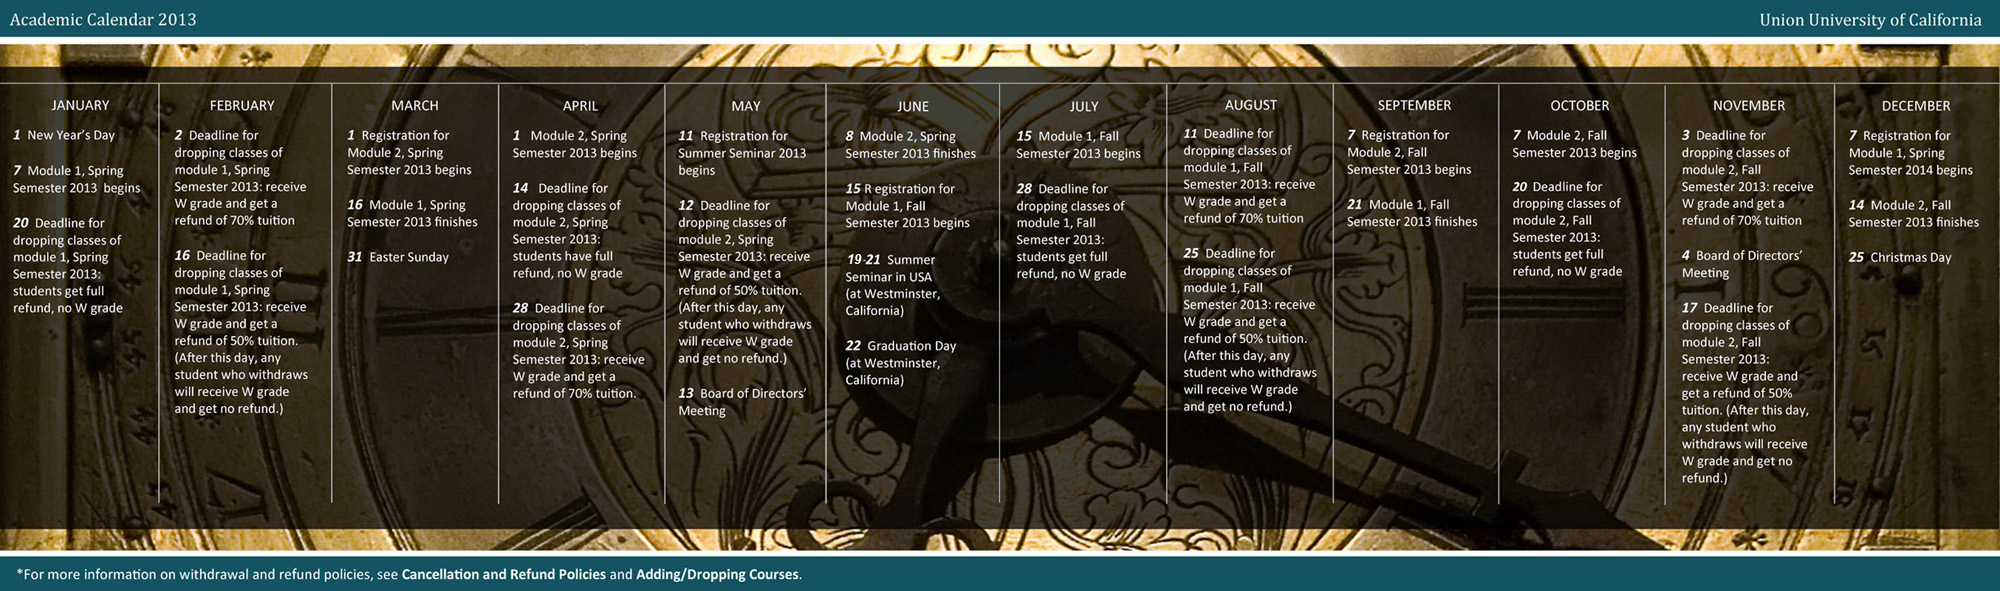 Academic and Administrative Calendar 2013